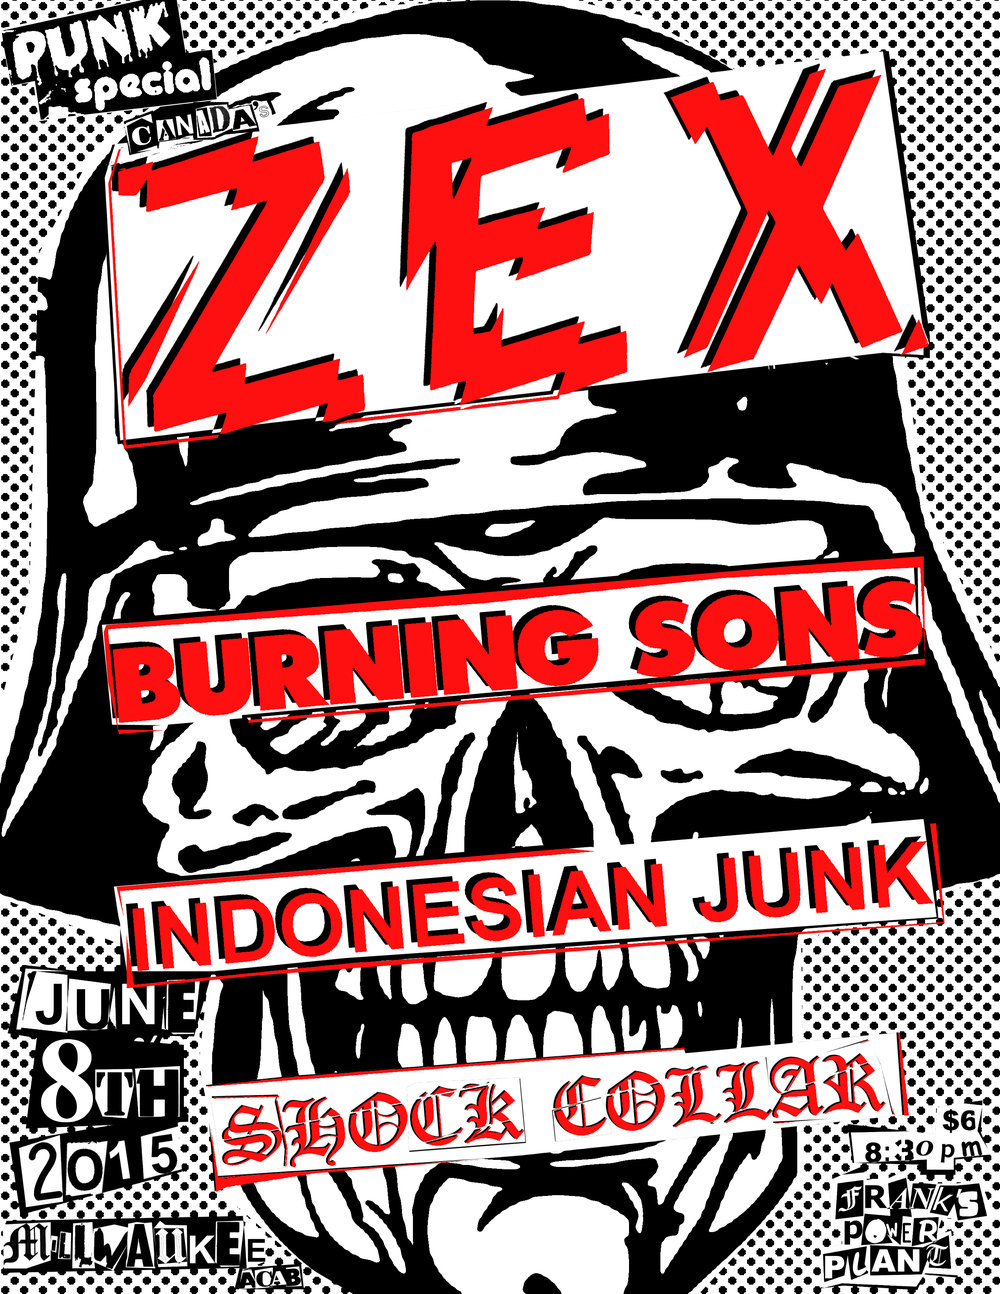 flyer-15.06.08-milwaukee-zex-red.jpg